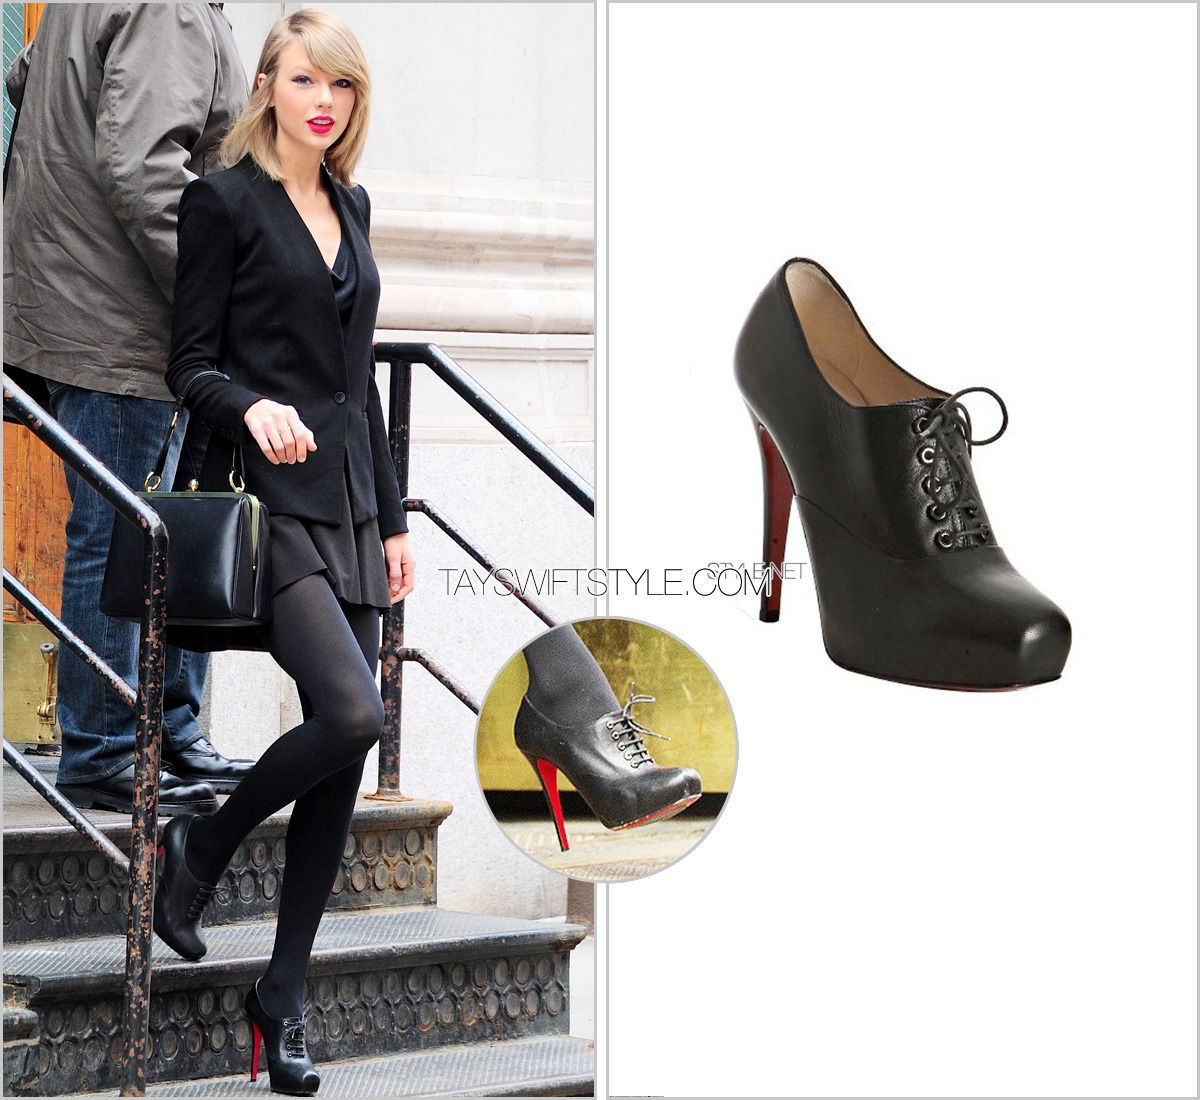 Leaving her apartment | April 17, 2014 | New York City, NY ...